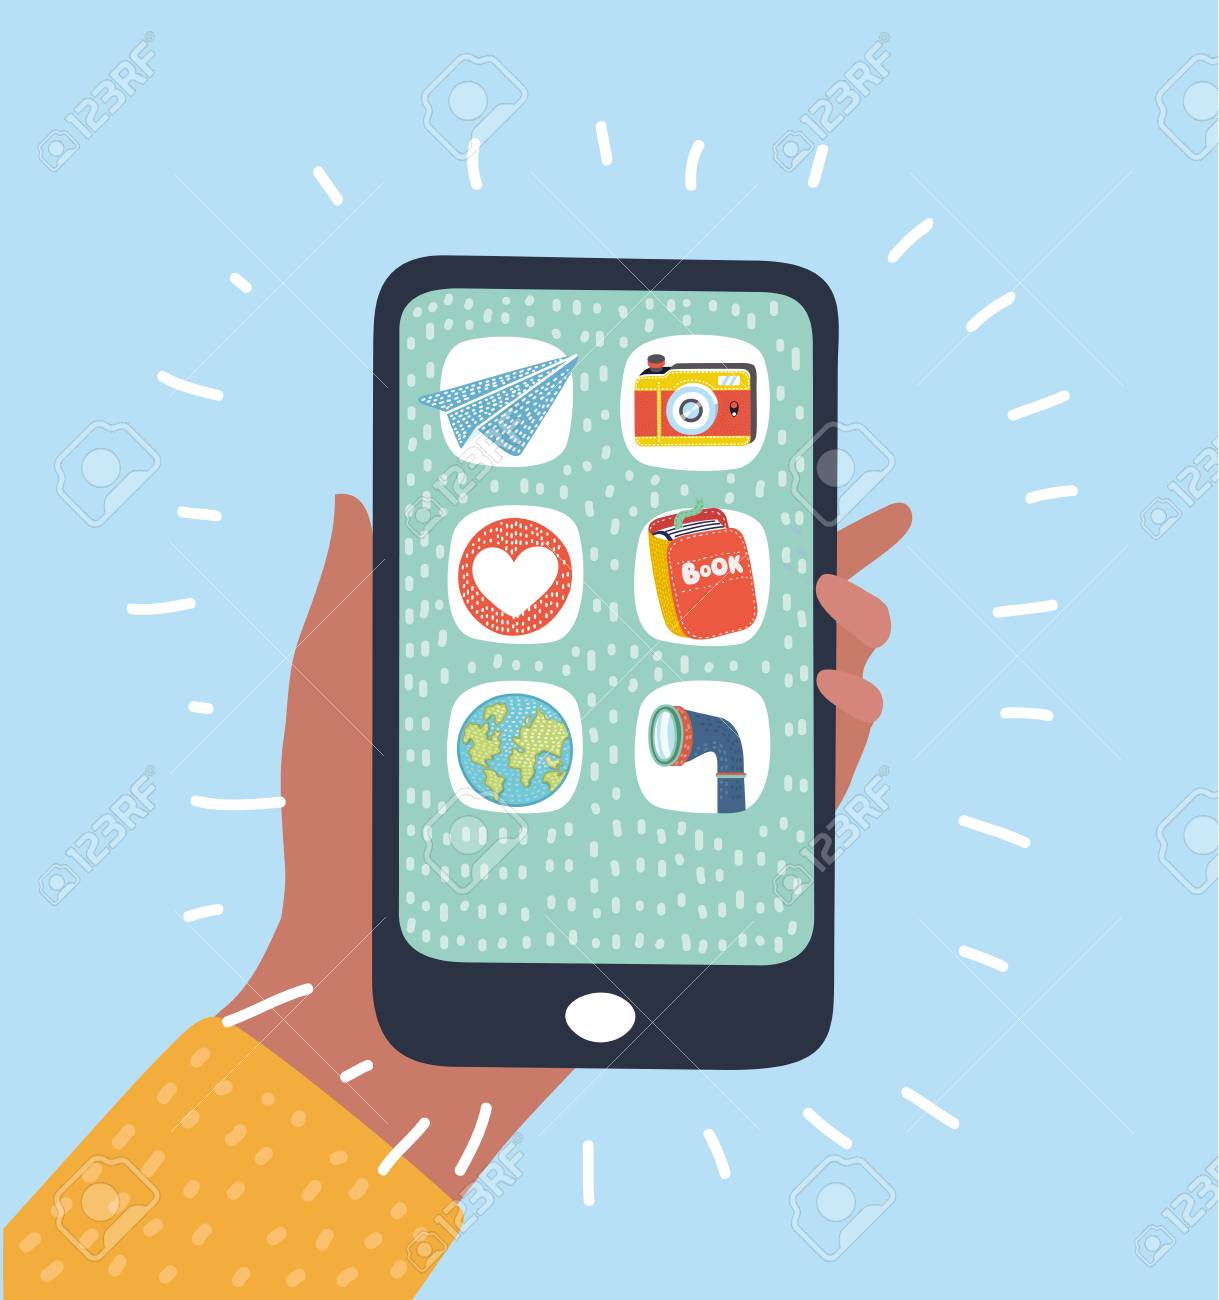 Vector Cartoon Illustrion Of Mobile Phone With Icon App On Display Royalty Free Cliparts Vectors And Stock Illustration Image 100719752